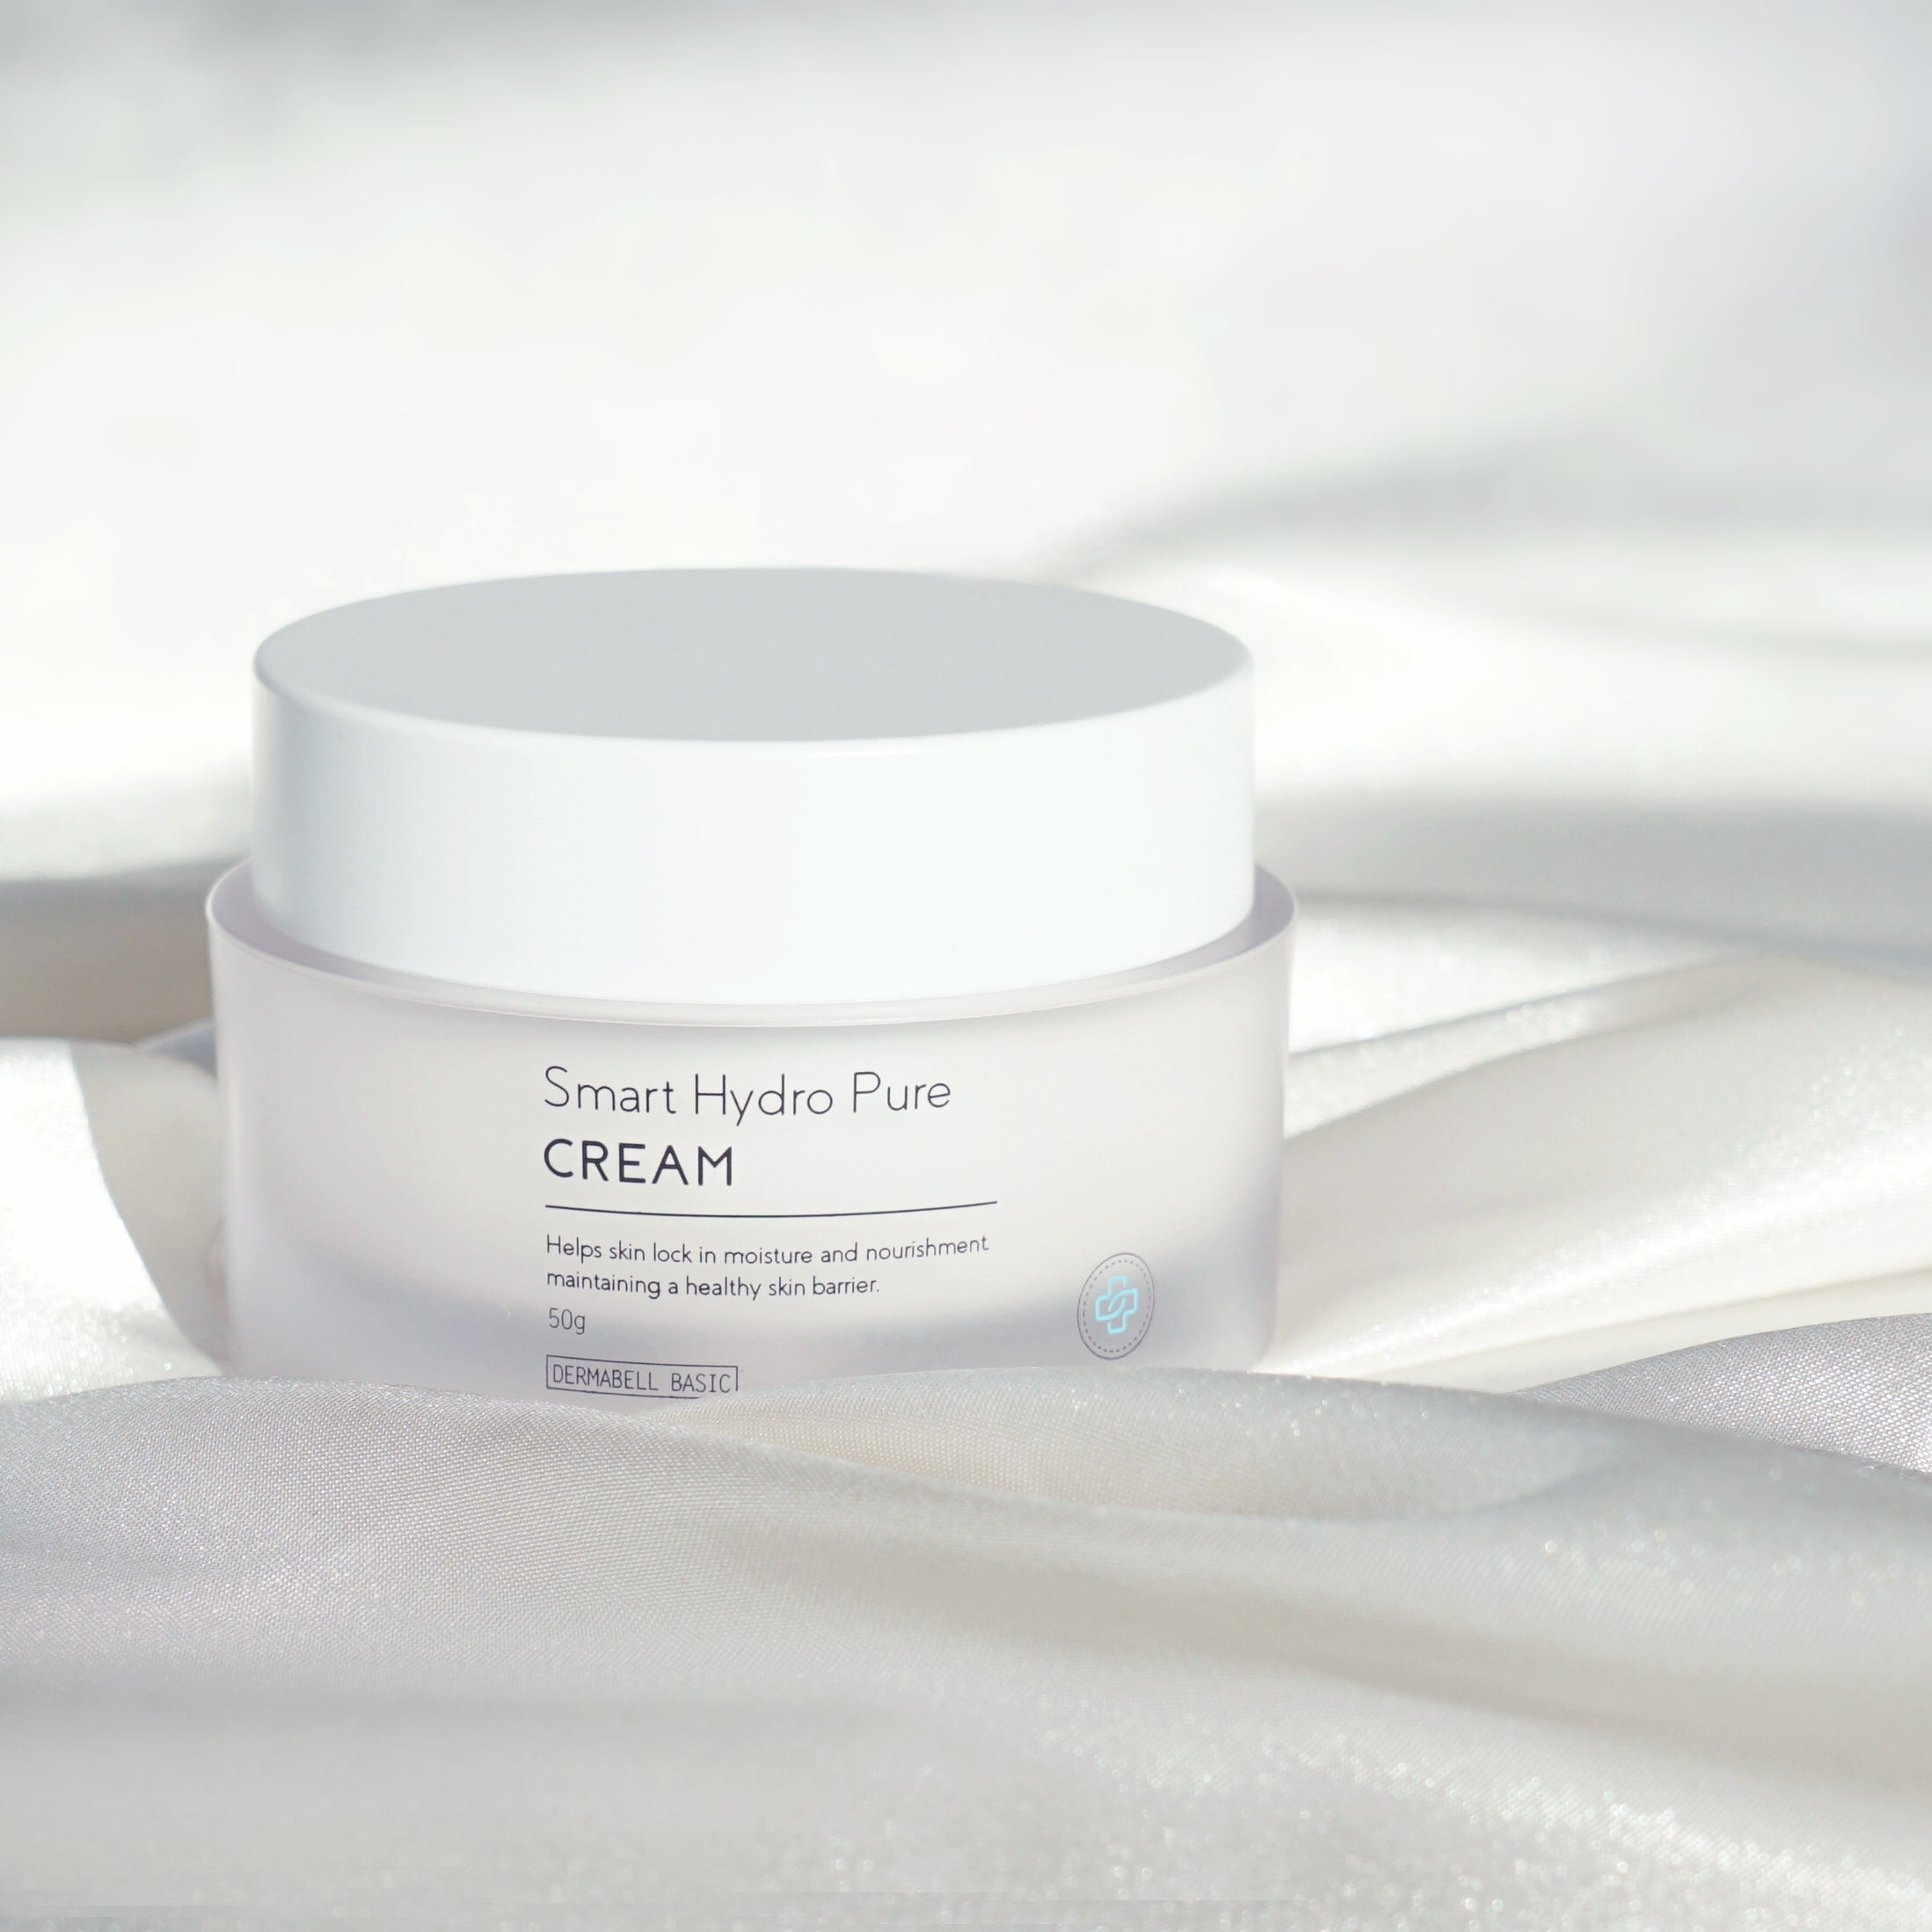 Smart Hydro Pure Cream Moisturiser by Dermabell Basic. Kbeauty. Skincare.